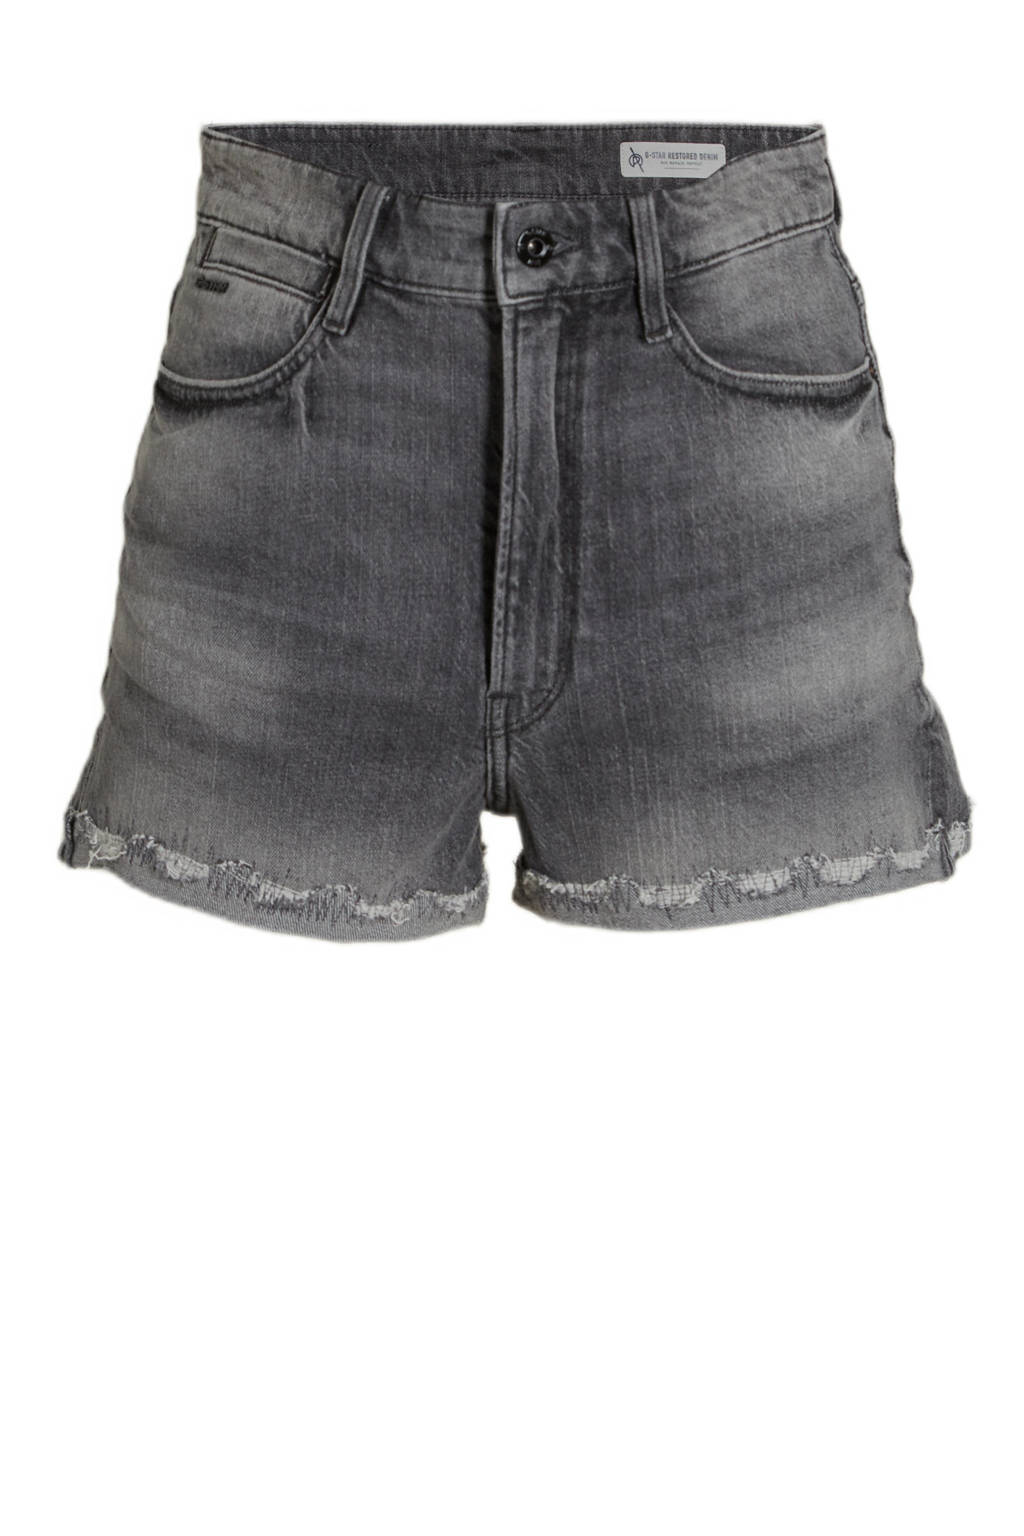 G-Star RAW Tedie Ripped Edge Ultra High Shorts high waist jeans short faded anchor, Faded anchor